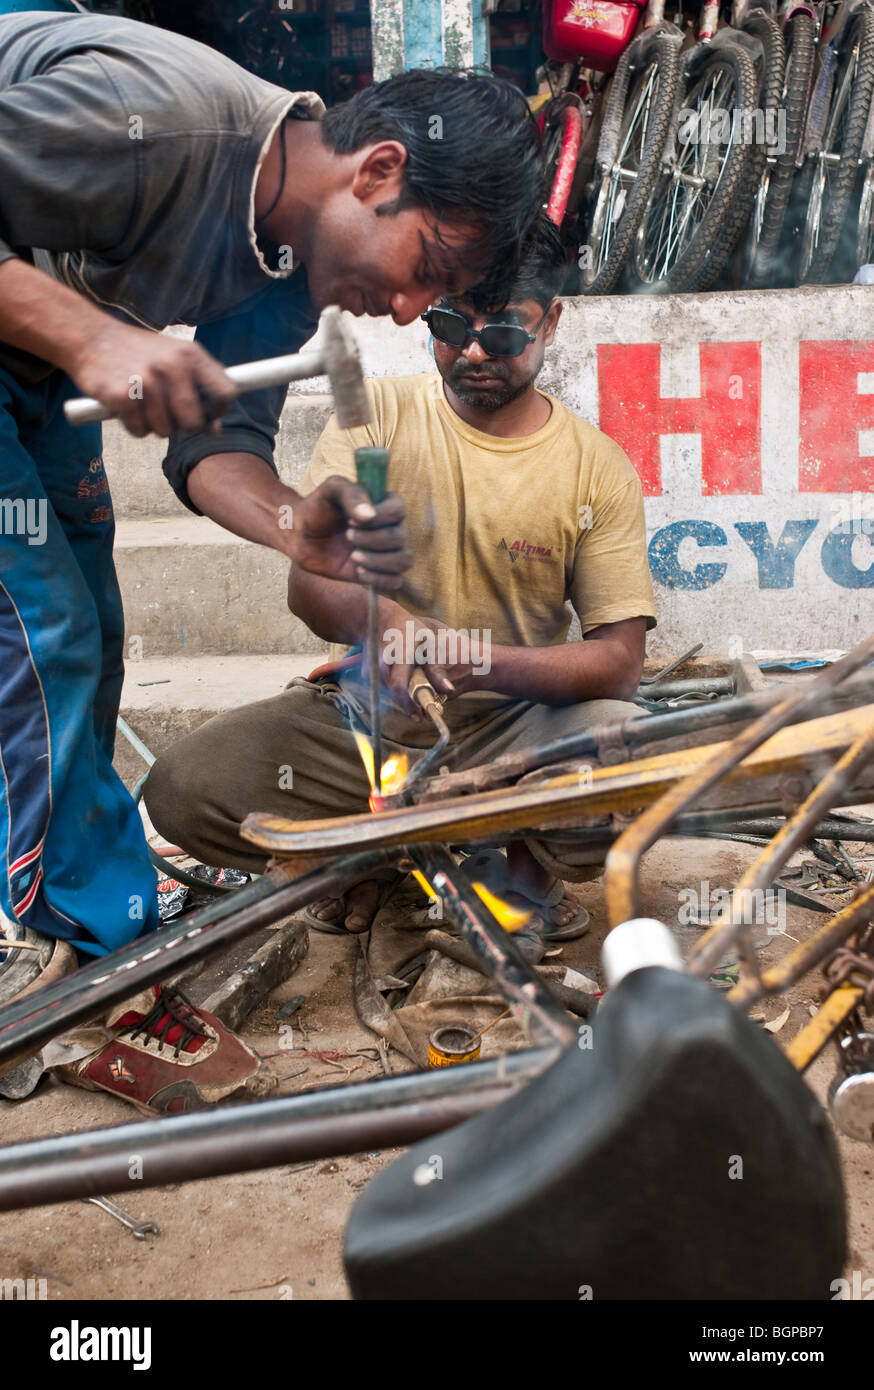 Mechanics welding a bicycle in the backstreet on Delhi, India - Stock Image